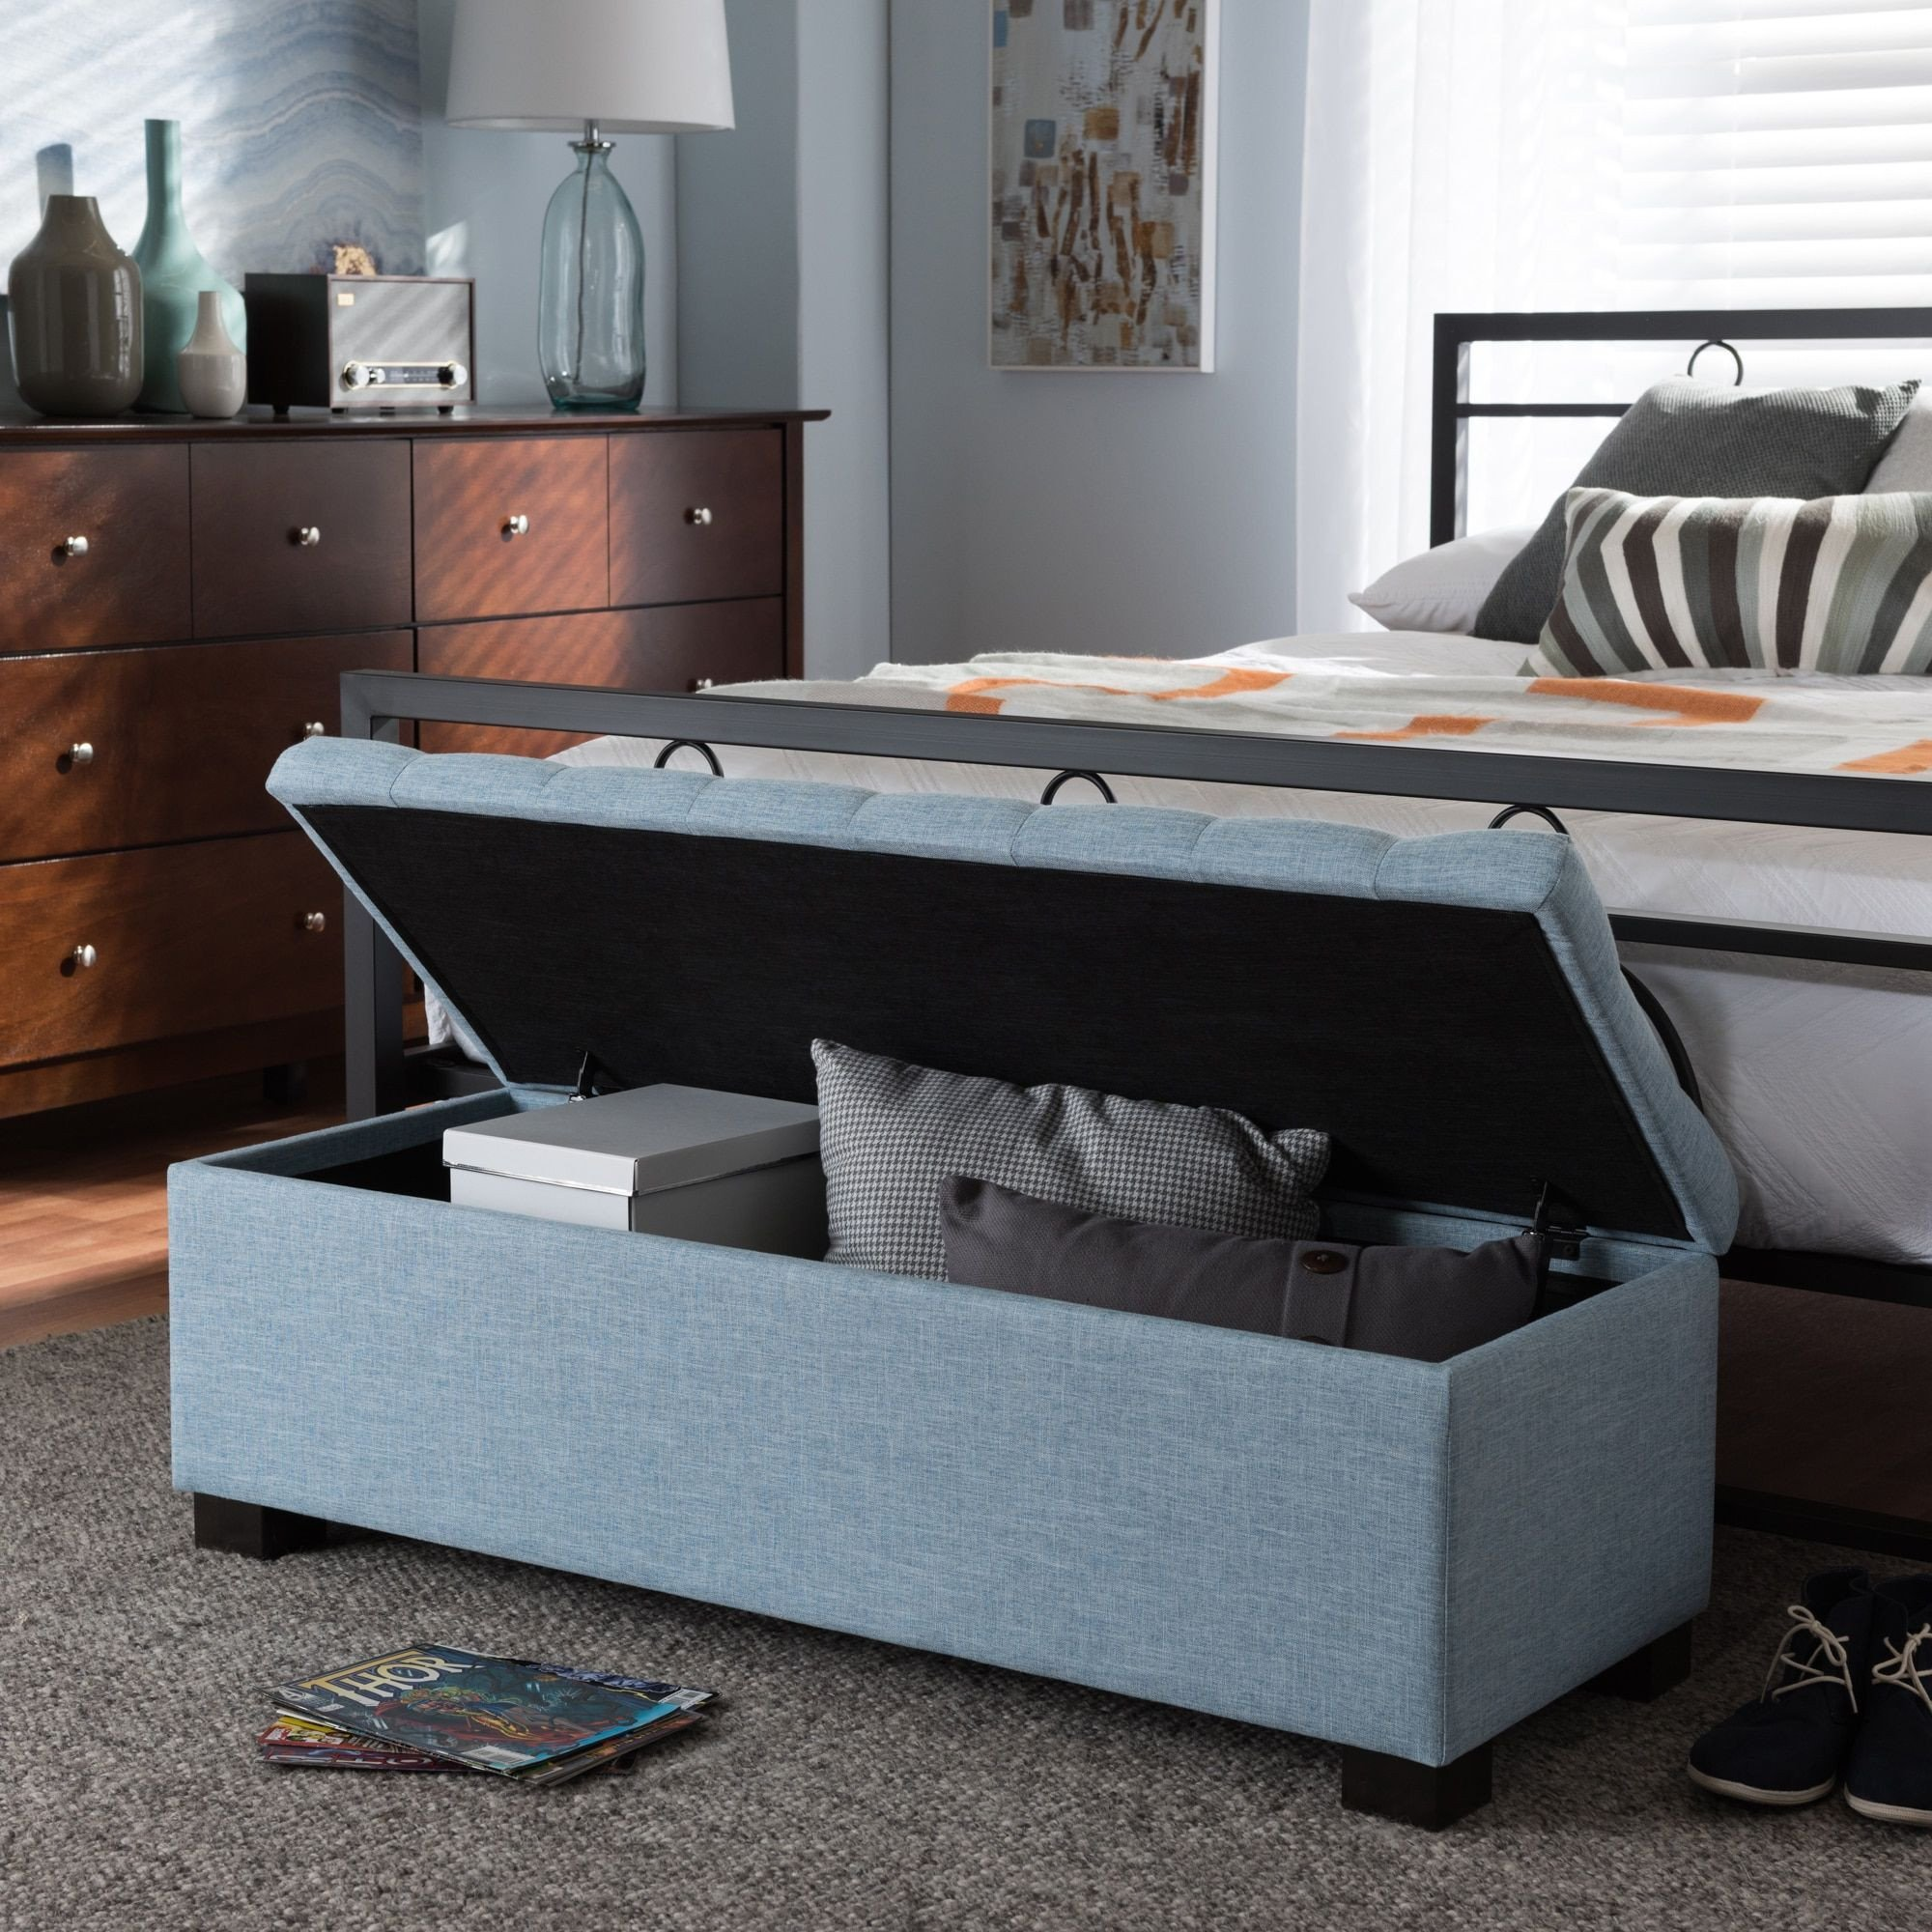 Fabric Bench for Bedroom Awesome Baxton Studio Alcmene Modern and Contemporary Light Blue